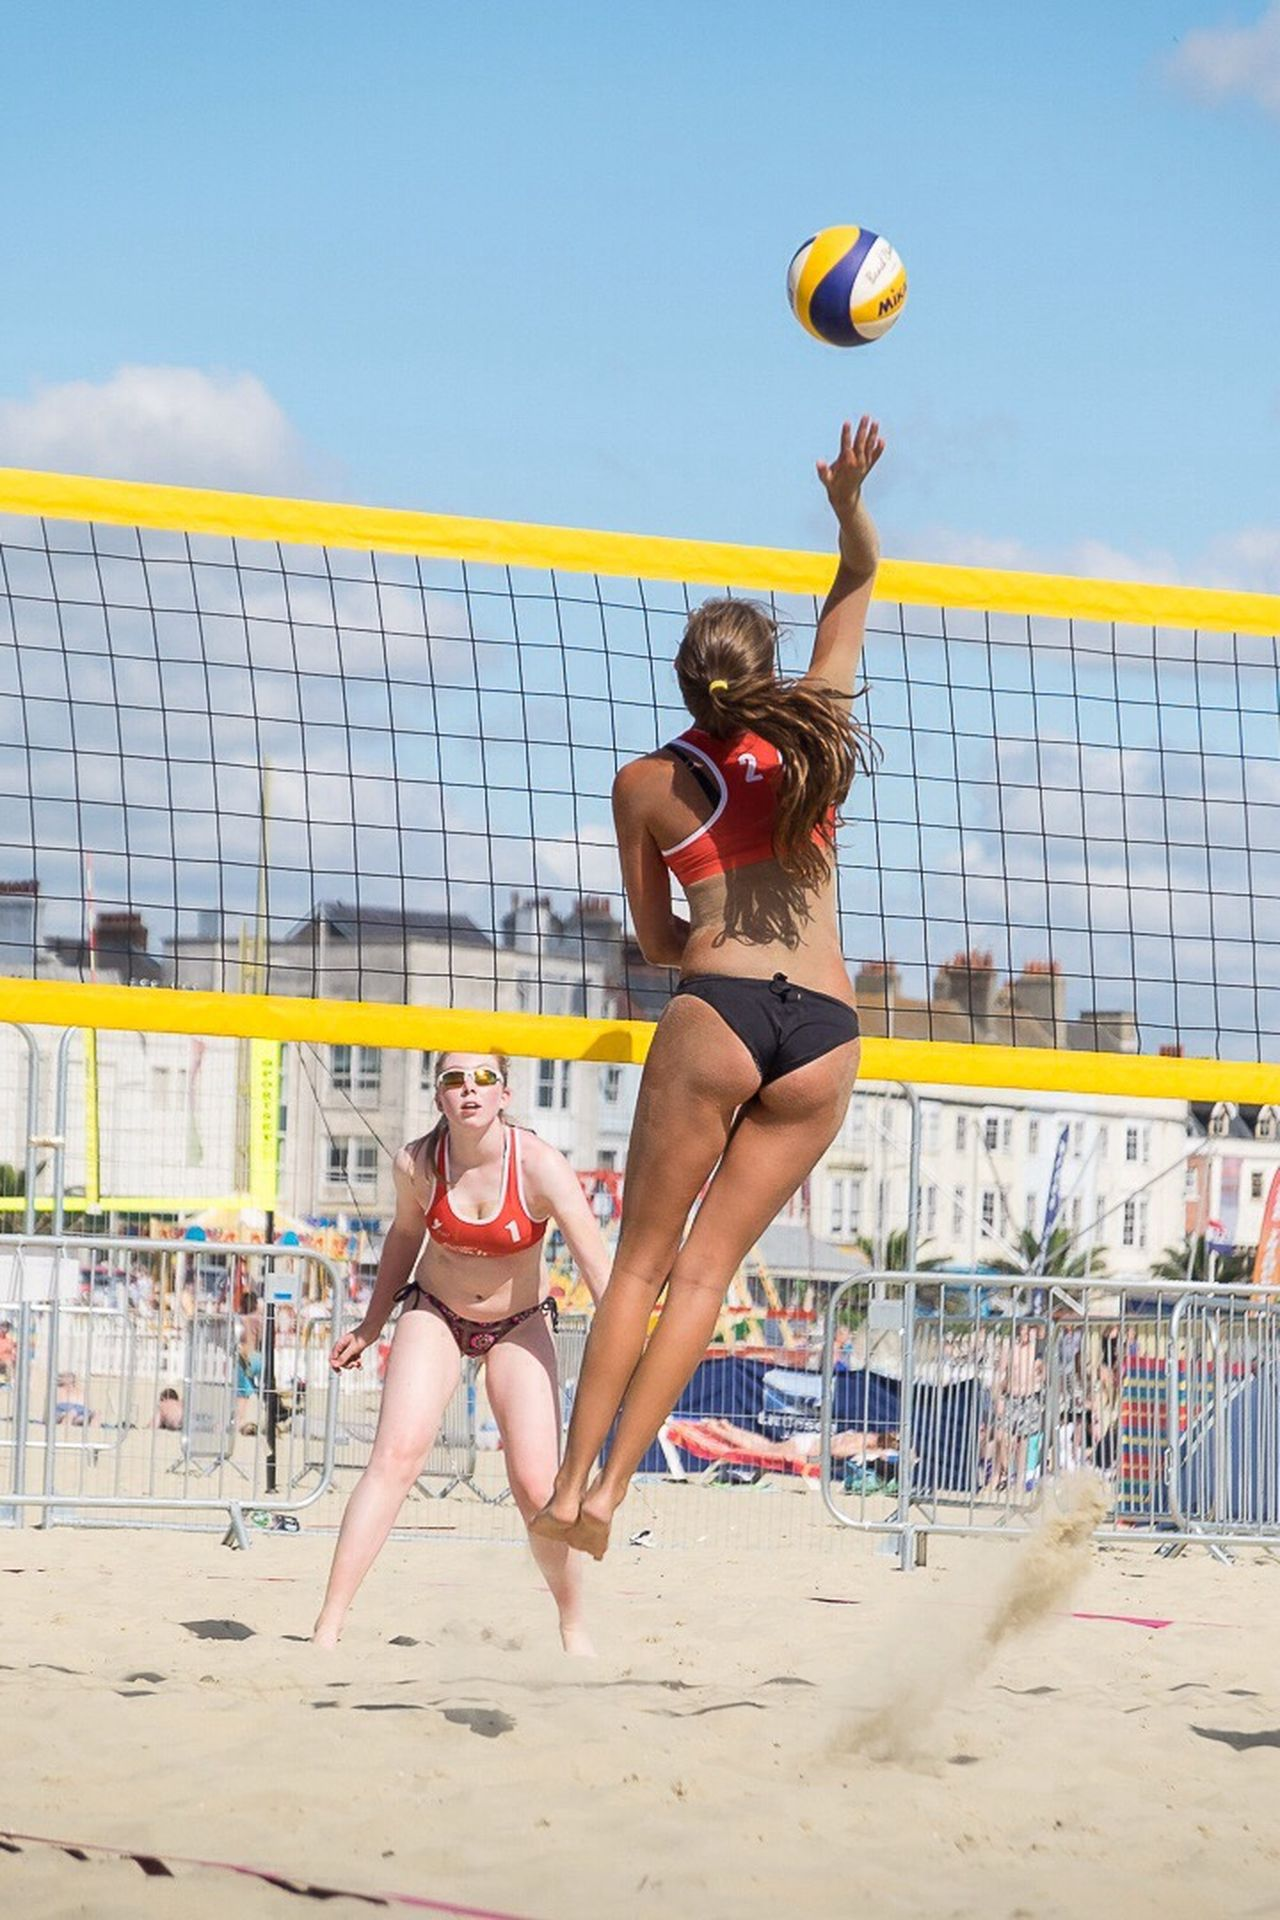 Beachvolleyball Beachvolley Beach Beachlife Weymouth Weymouth Beach Weymouth Dorset Volleyball Volleyball Girls Volleyball Tournament